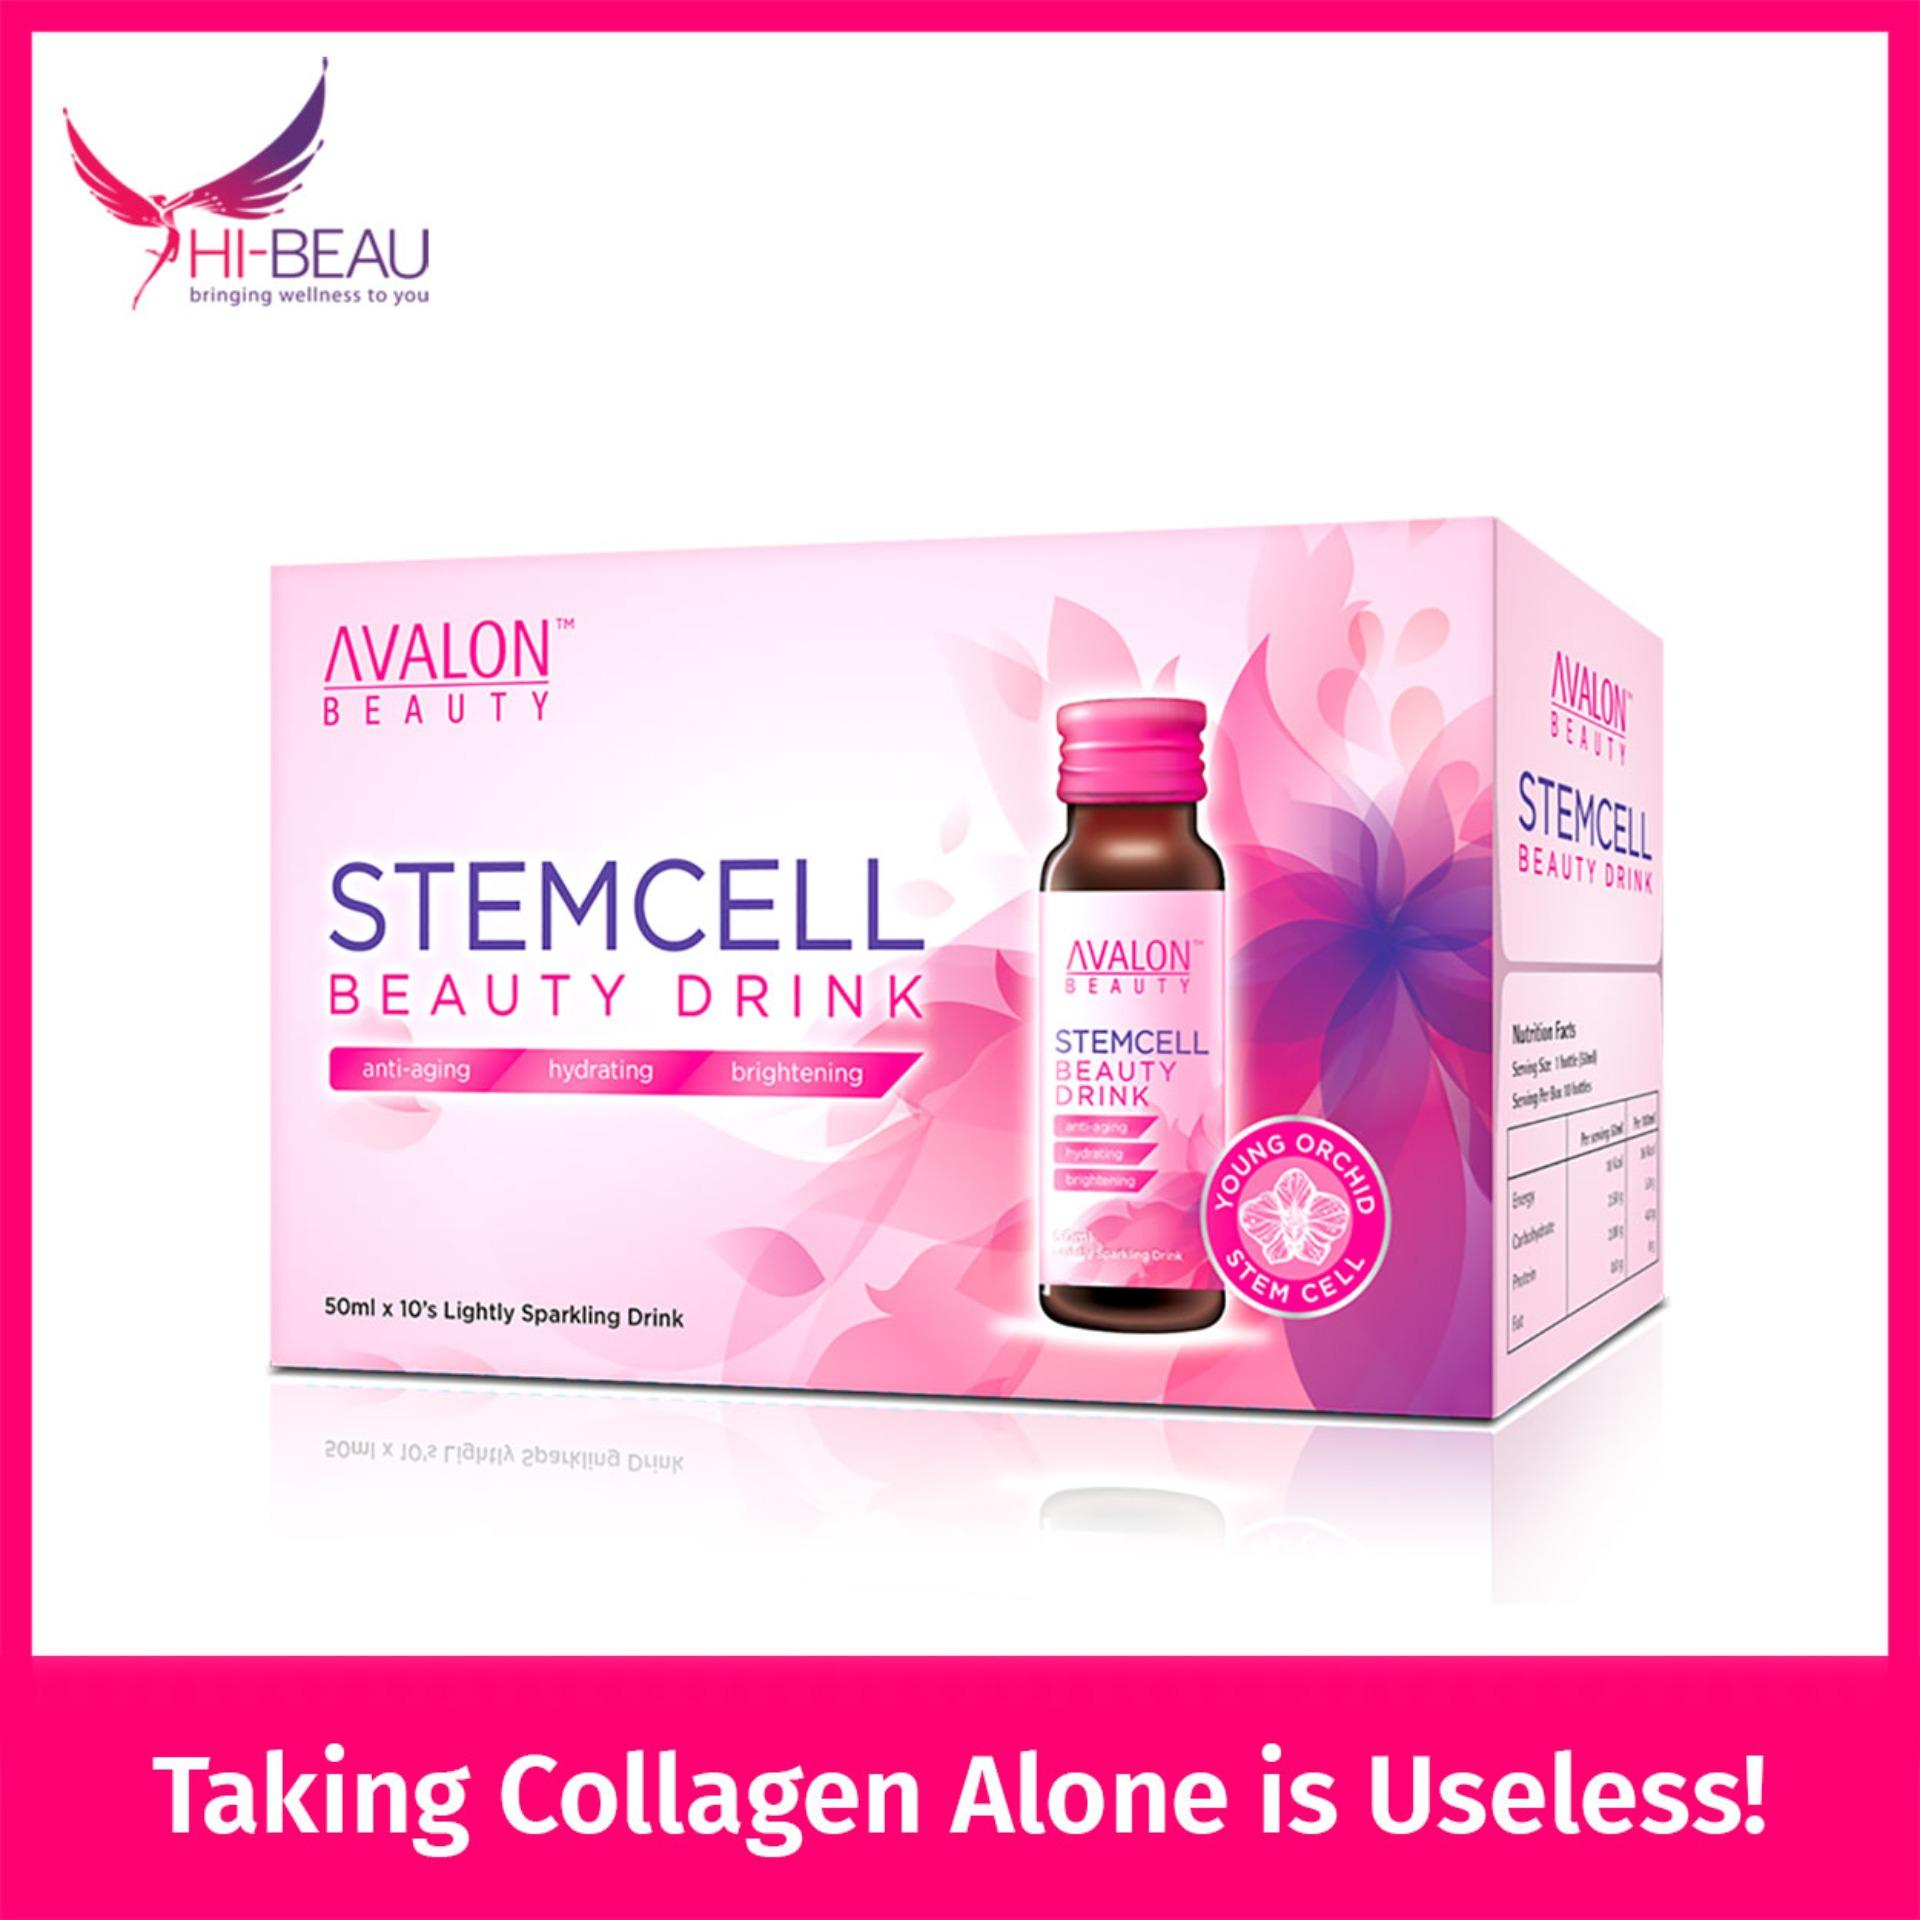 Avalon Stemcell Beauty Drink Reviews